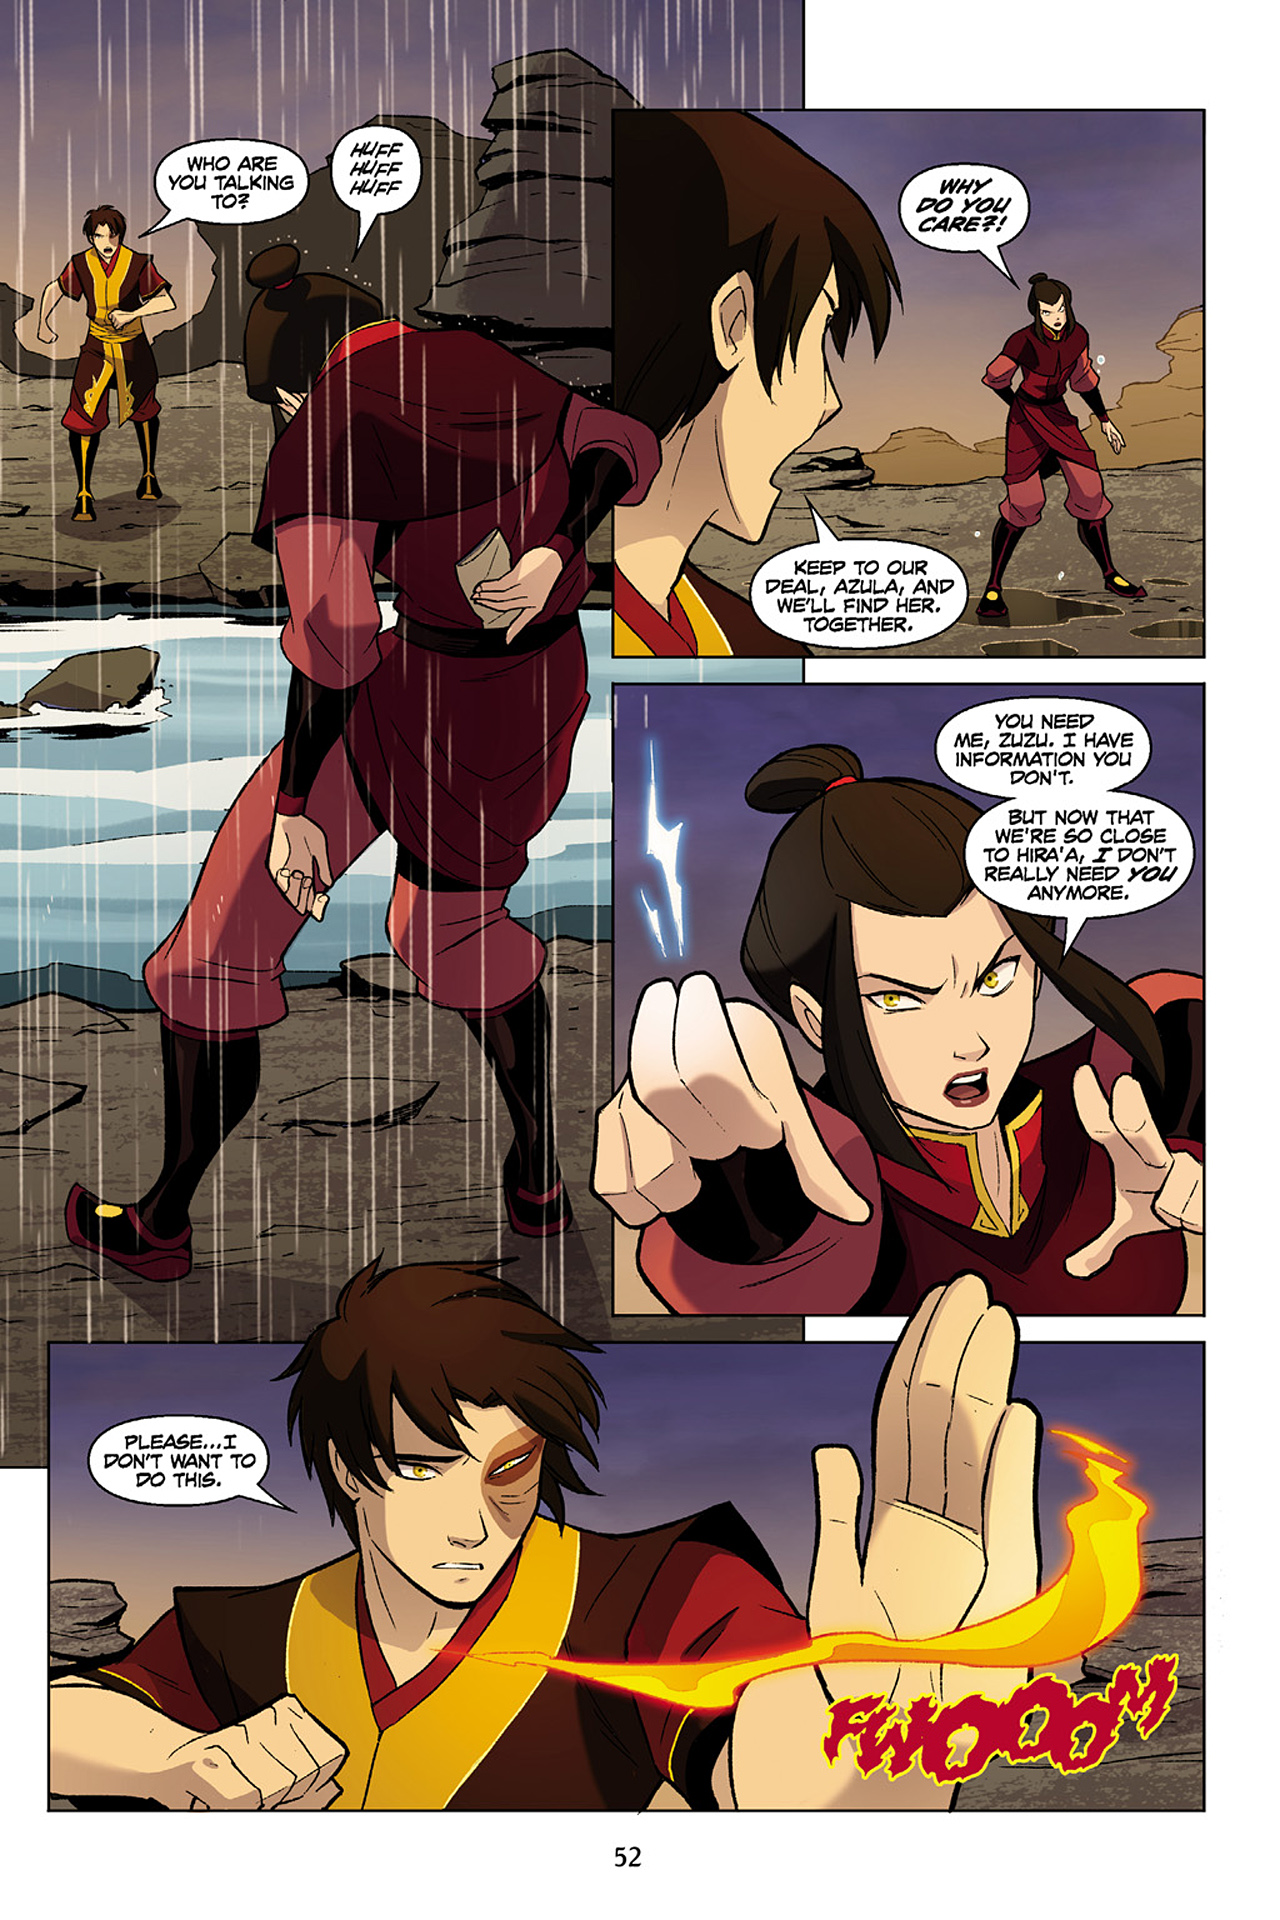 Read online Nickelodeon Avatar: The Last Airbender - The Search comic -  Issue # Part 1 - 53